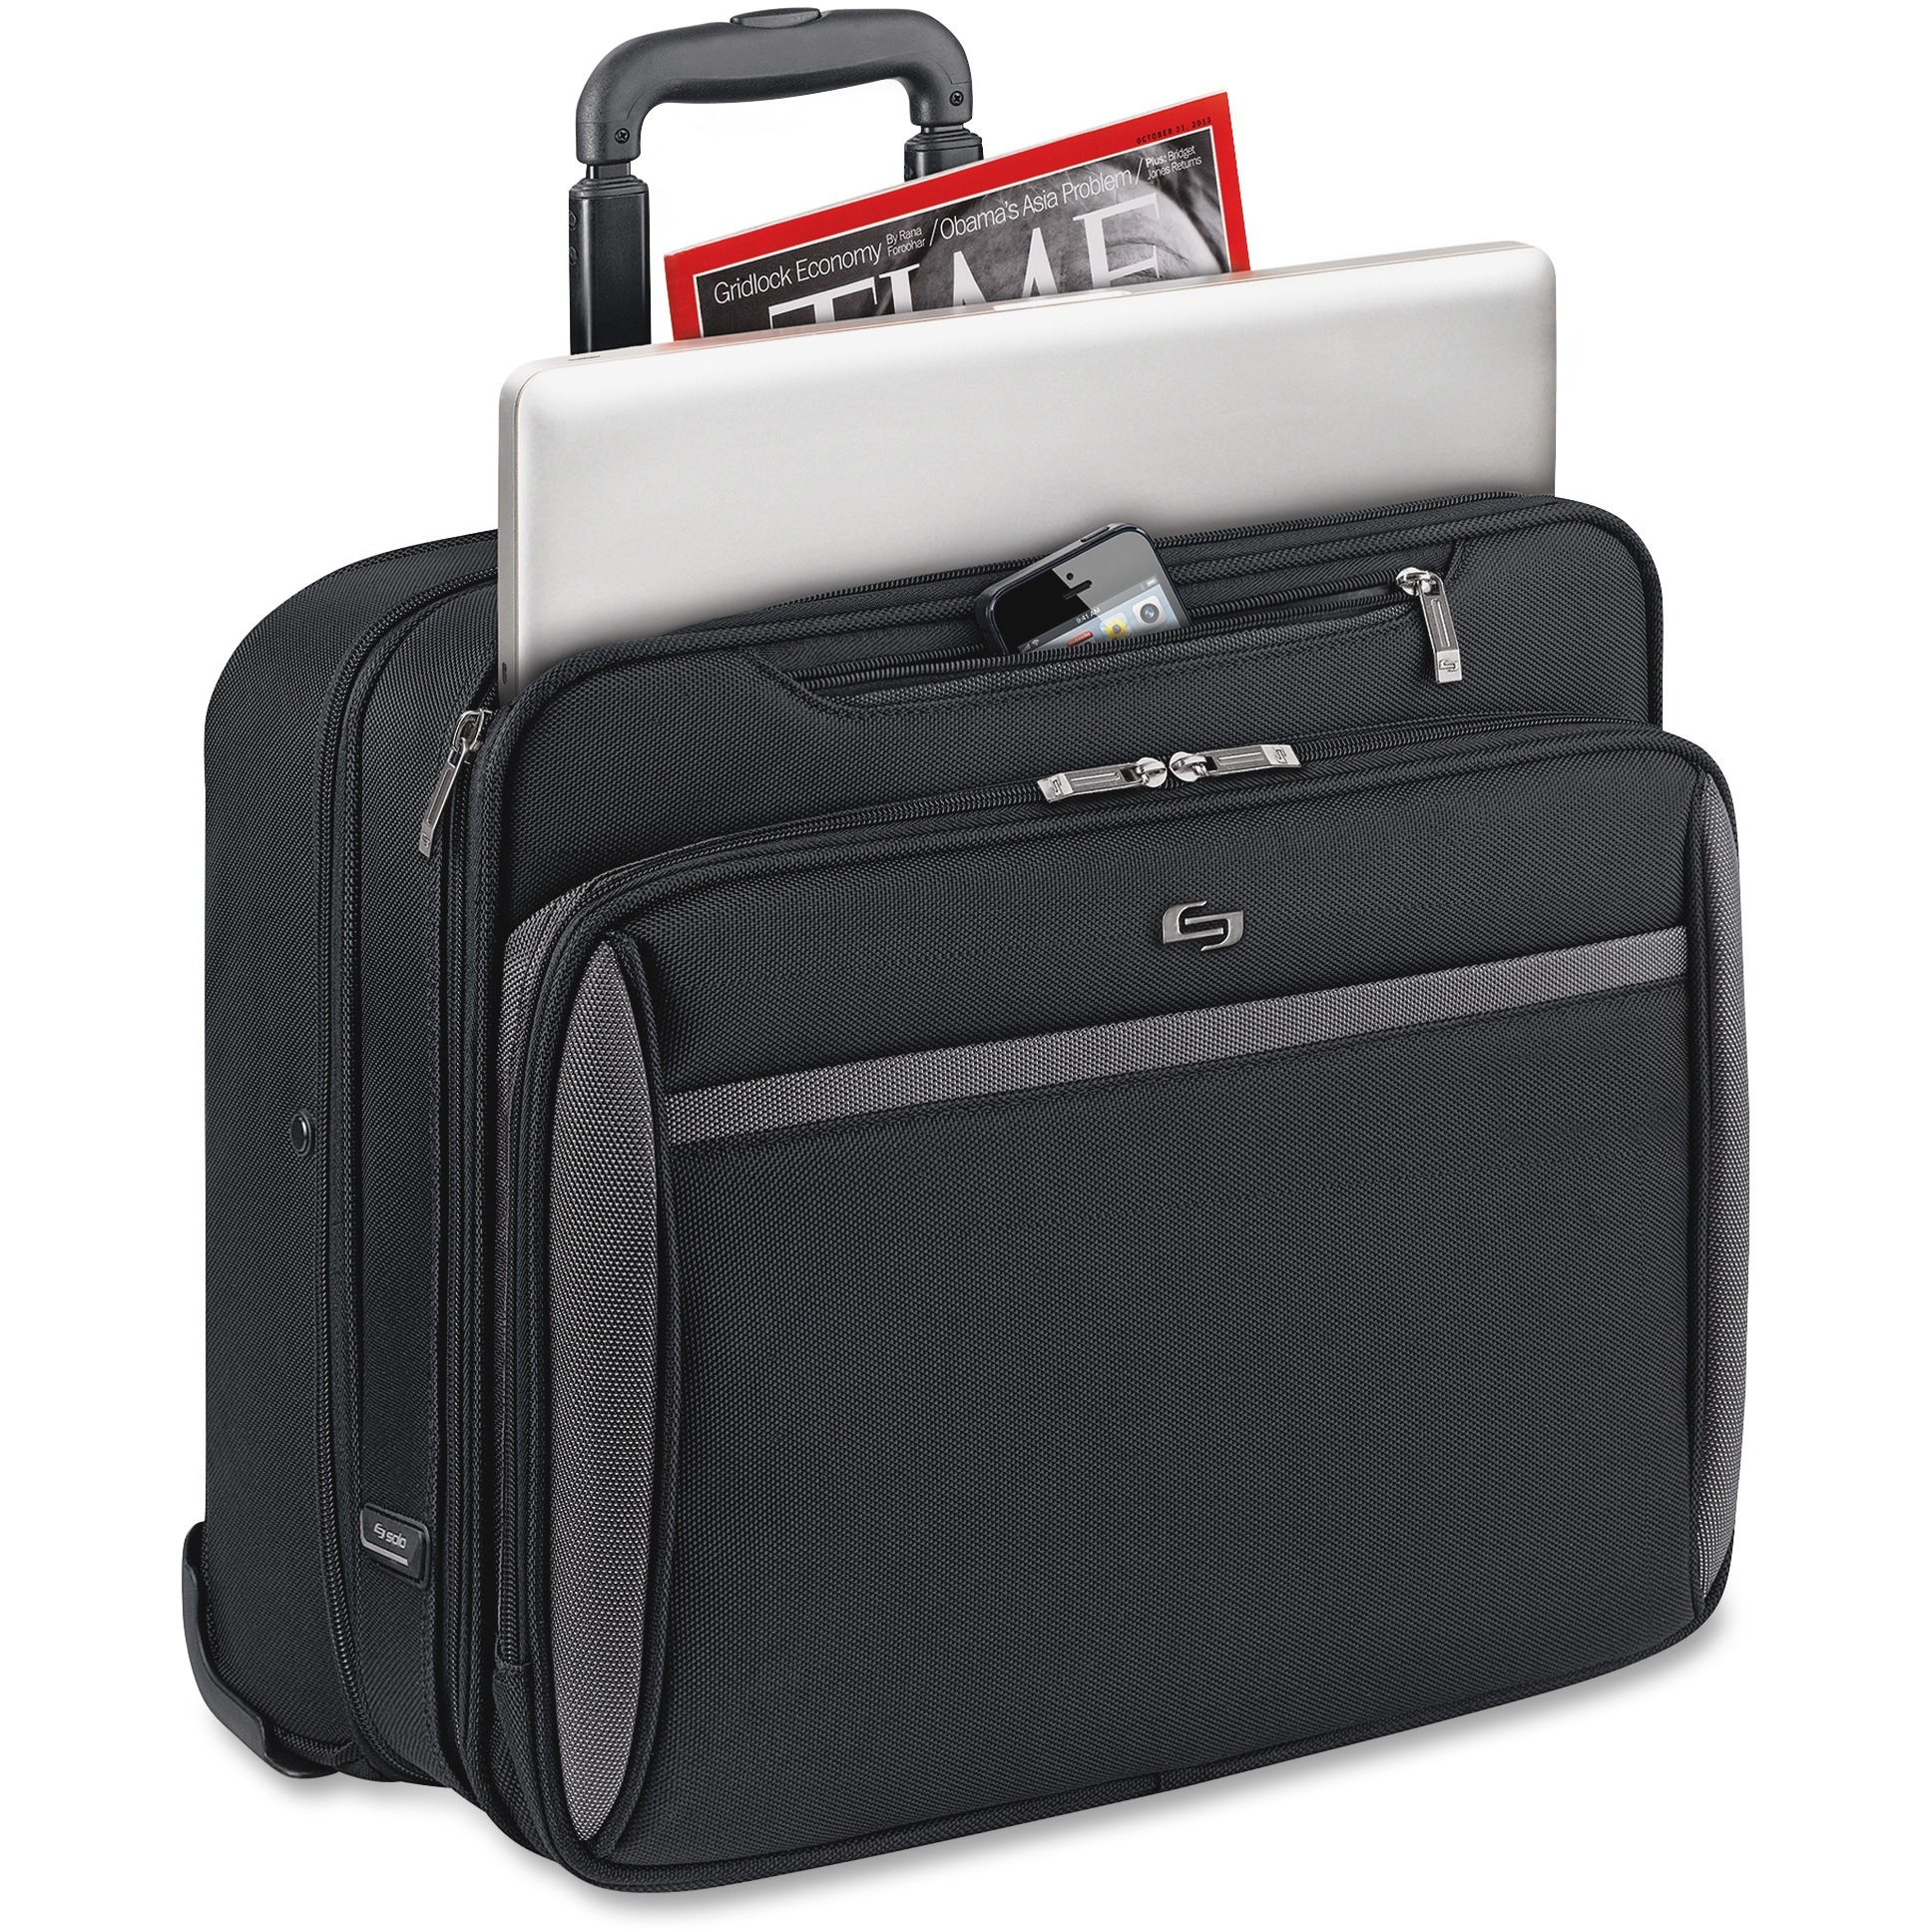 Solo, USLCLA9024, US Luggage CheckFast Rolling Laptop Case, 1, Black